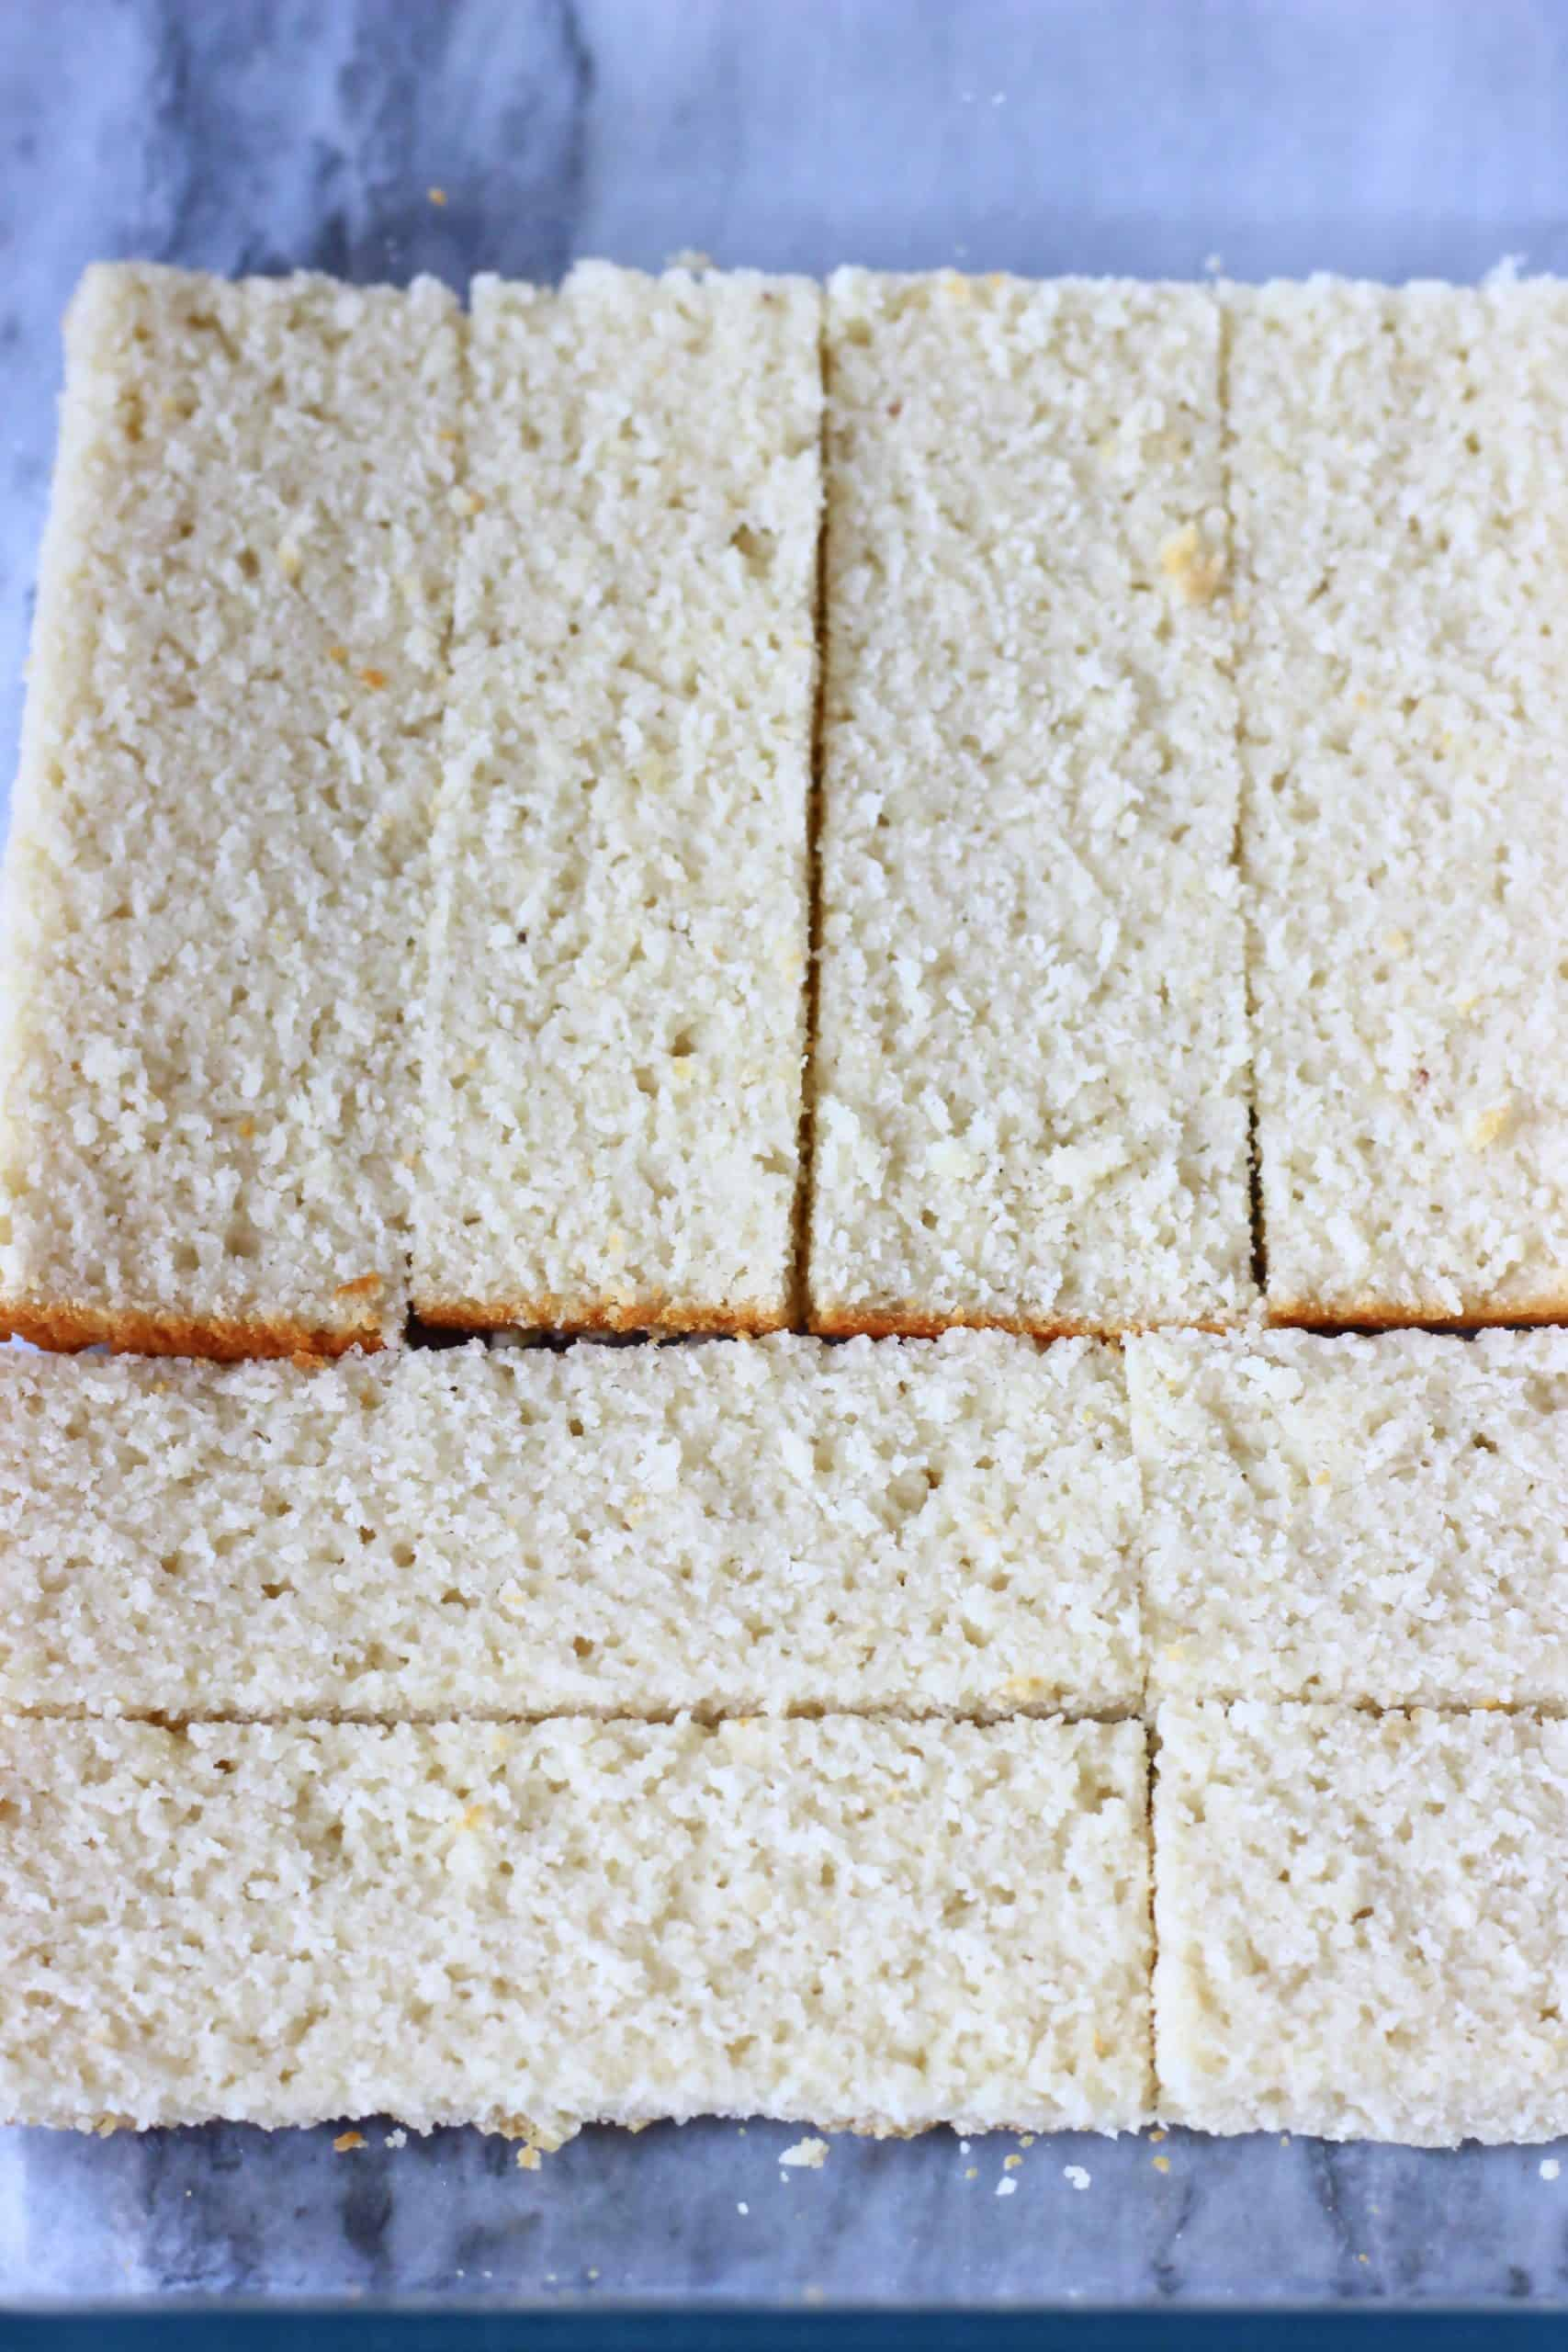 Gluten-free vegan sponge rectangles laid out along the bottom of a baking dish